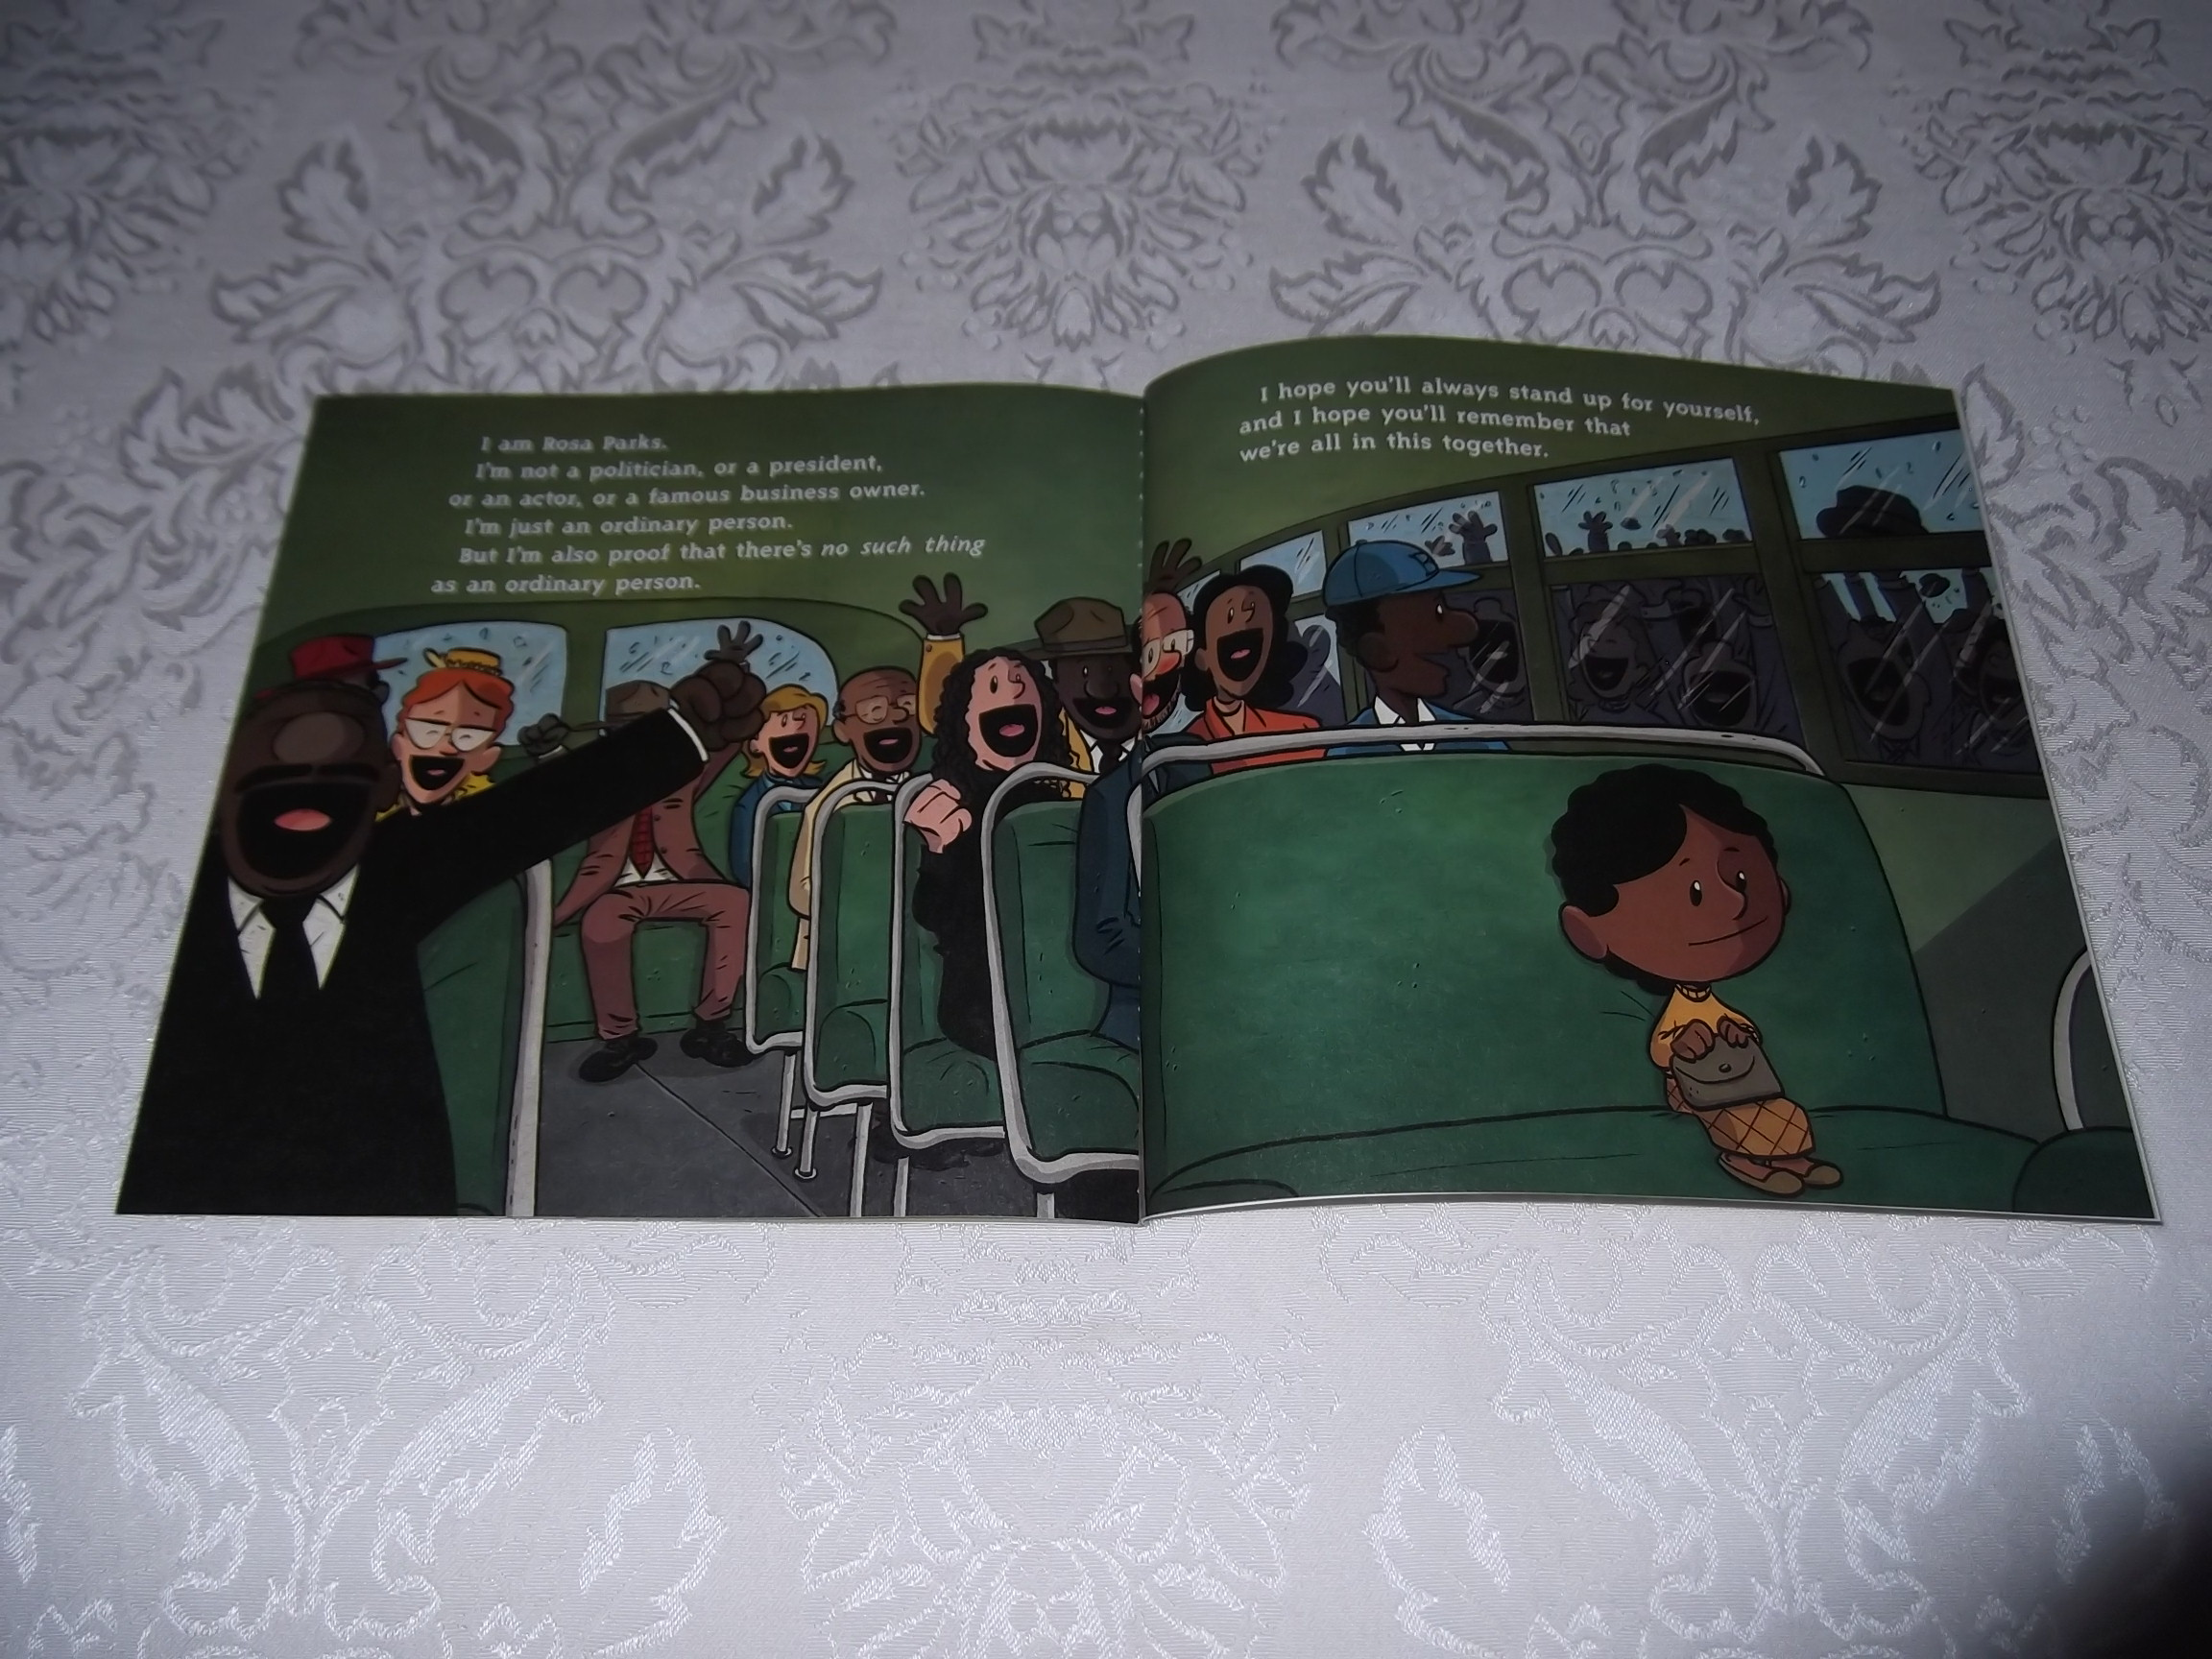 Image 3 of I am Rosa Parks Brad Meltzer Brand New SC Ordinary People Change The World